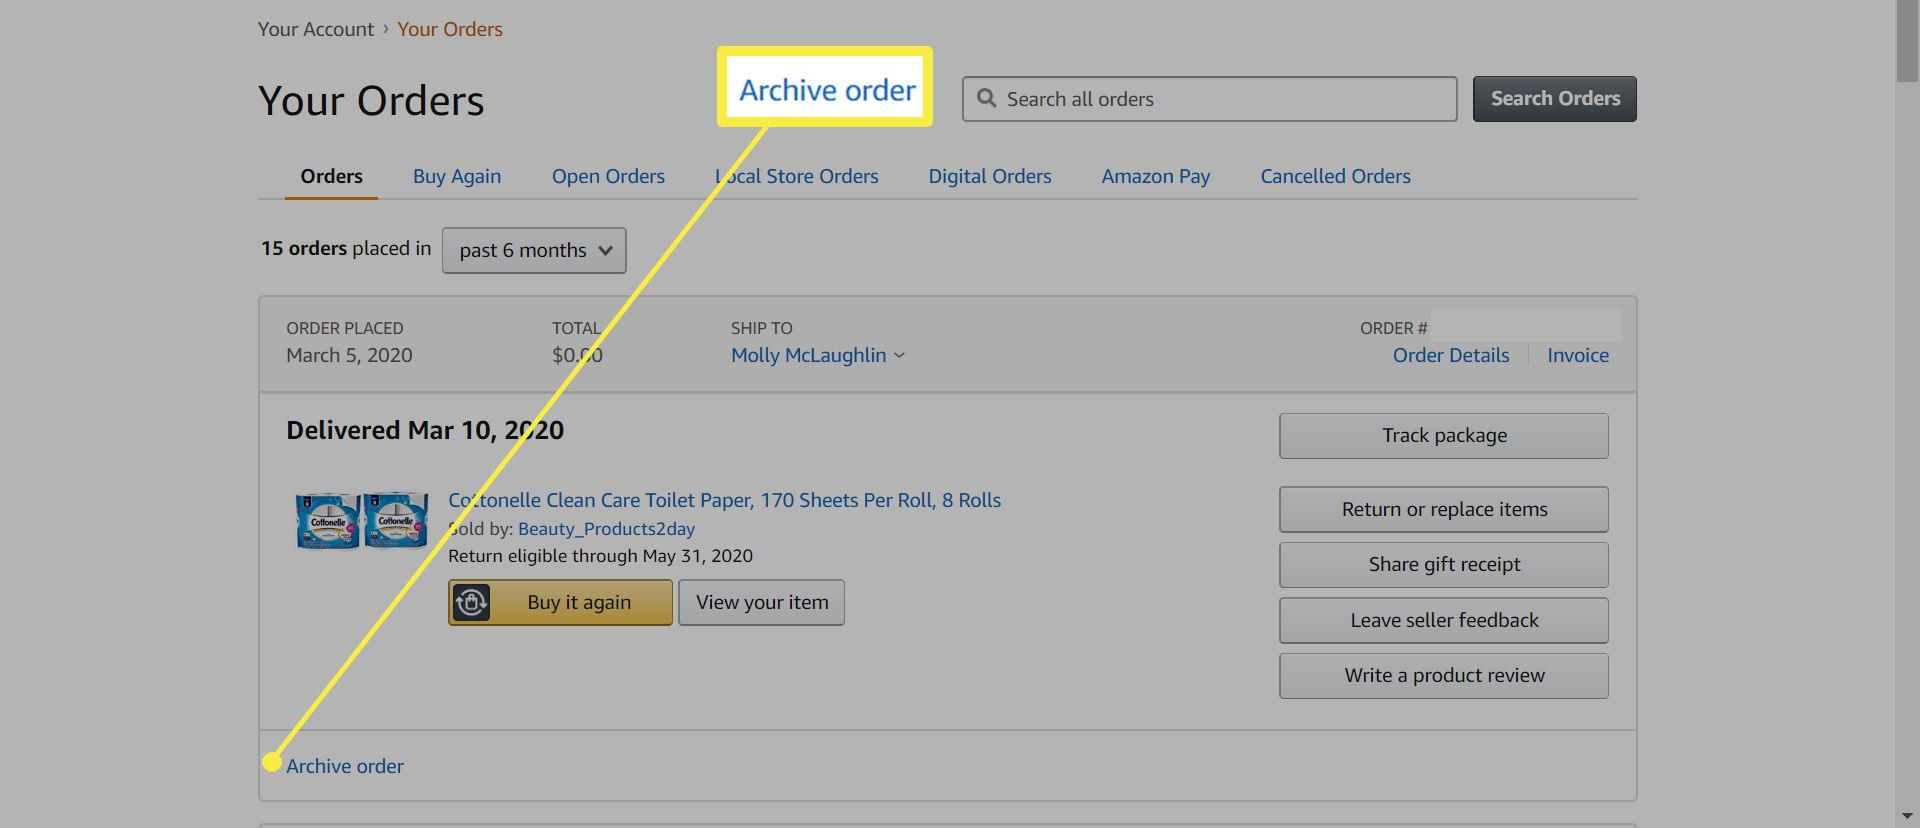 Archiving an order on Amazon.